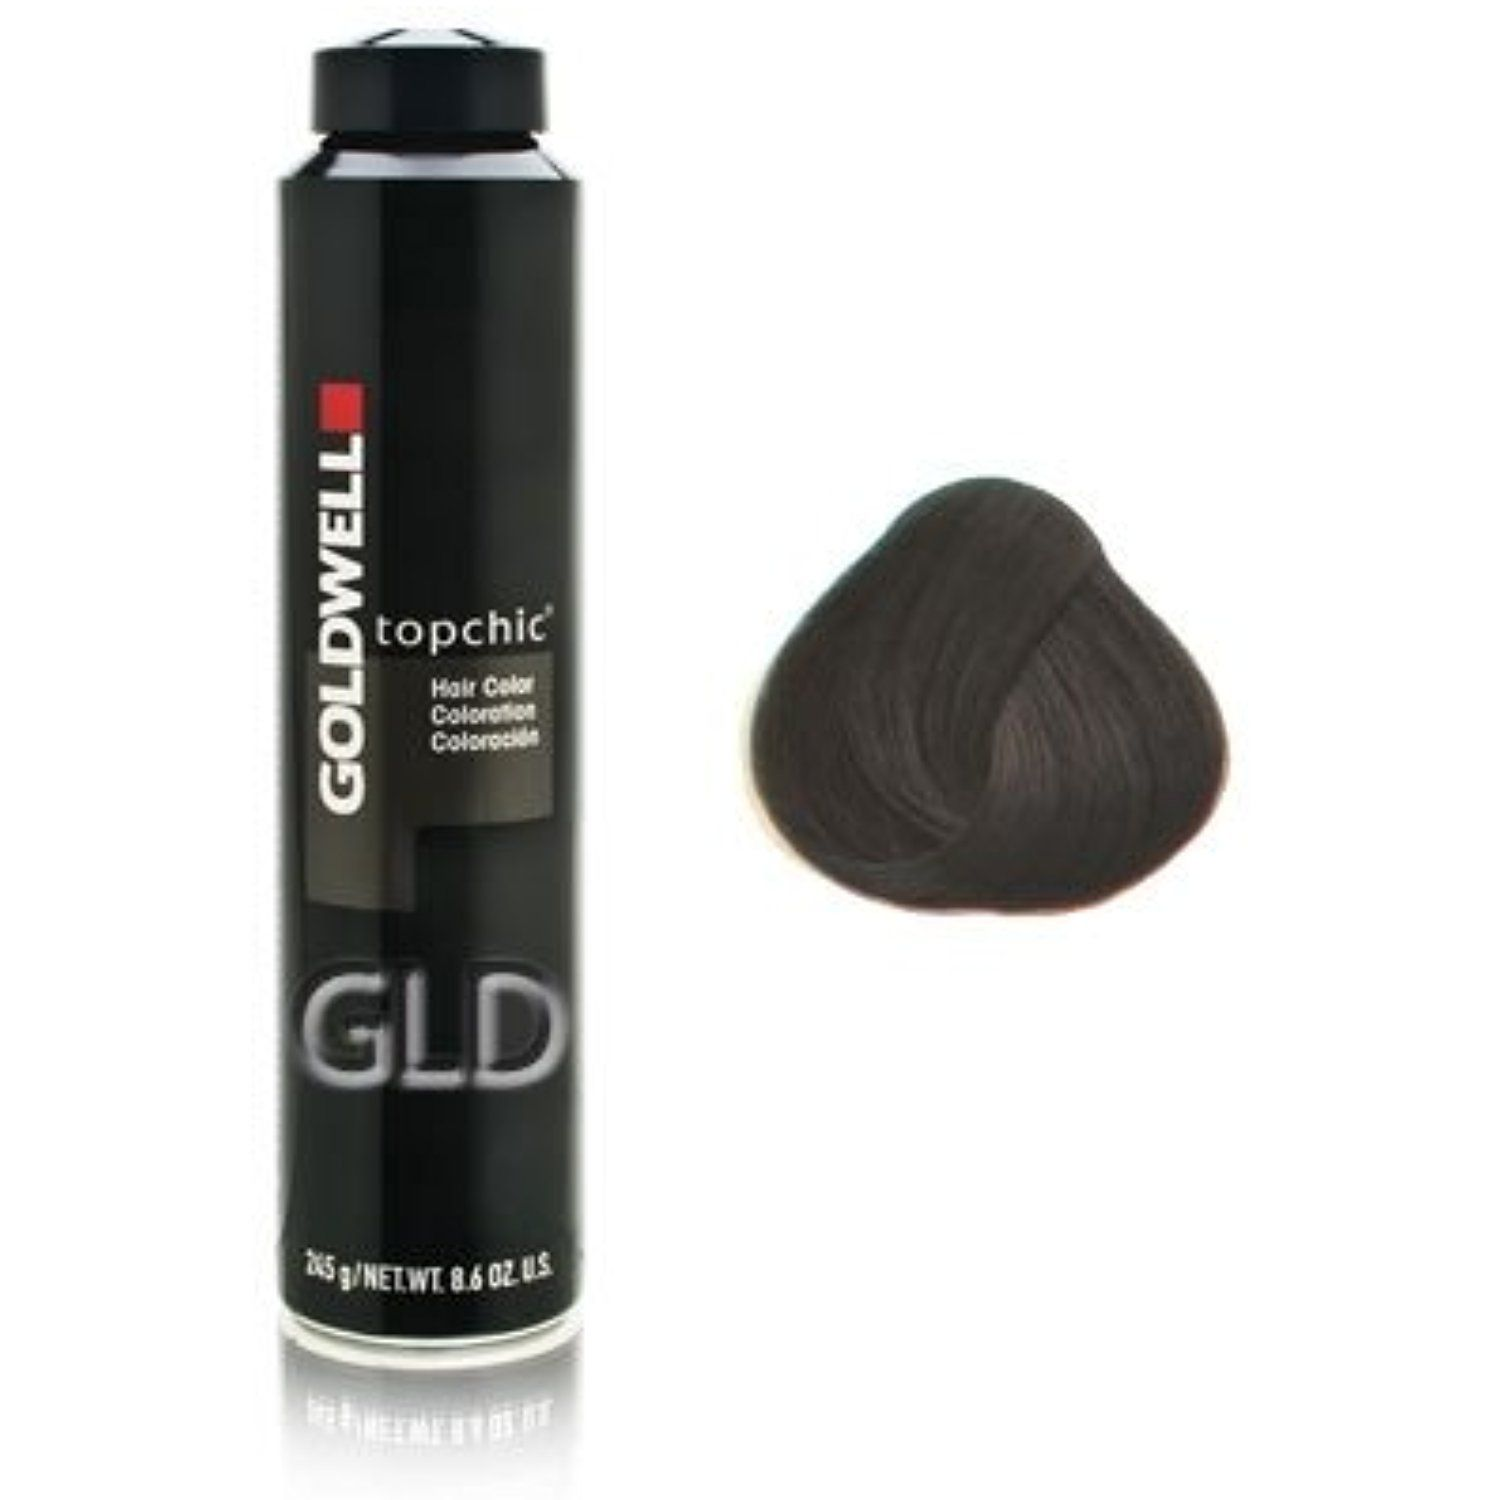 Goldwell Topchic Color 5n 8 6oz Details Can Be Found By